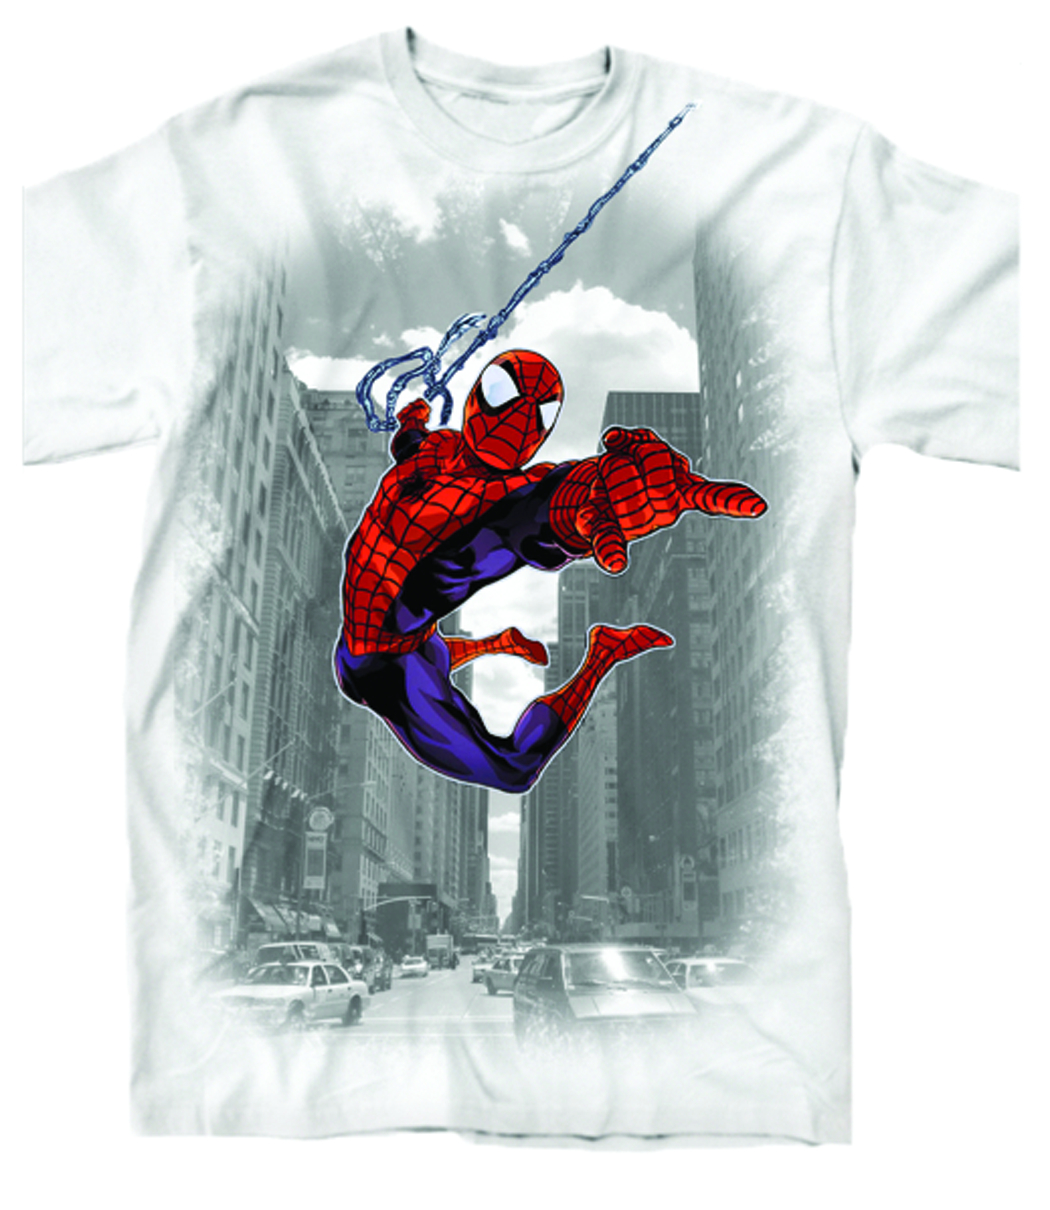 SPIDER-MAN THROUGH THE CITY PX WHT T/S XL